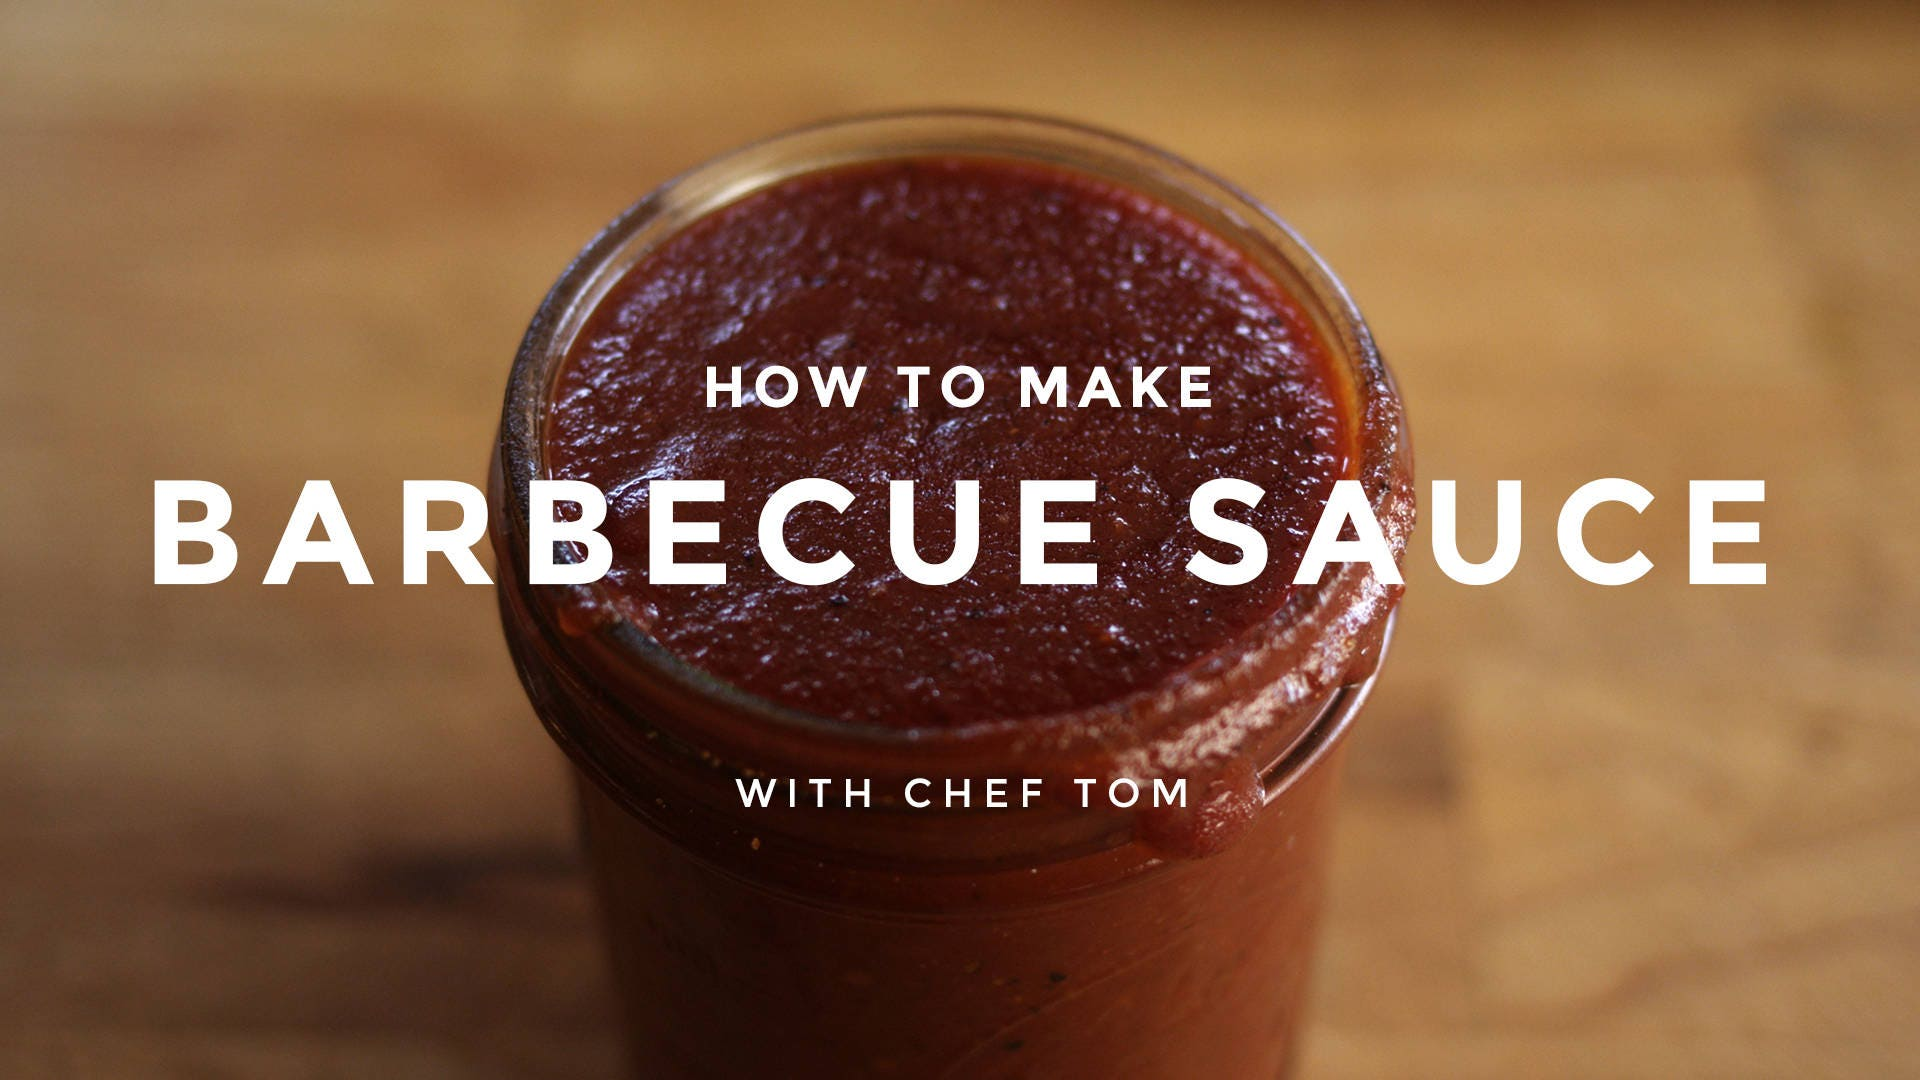 How to Make Barbecue Sauce